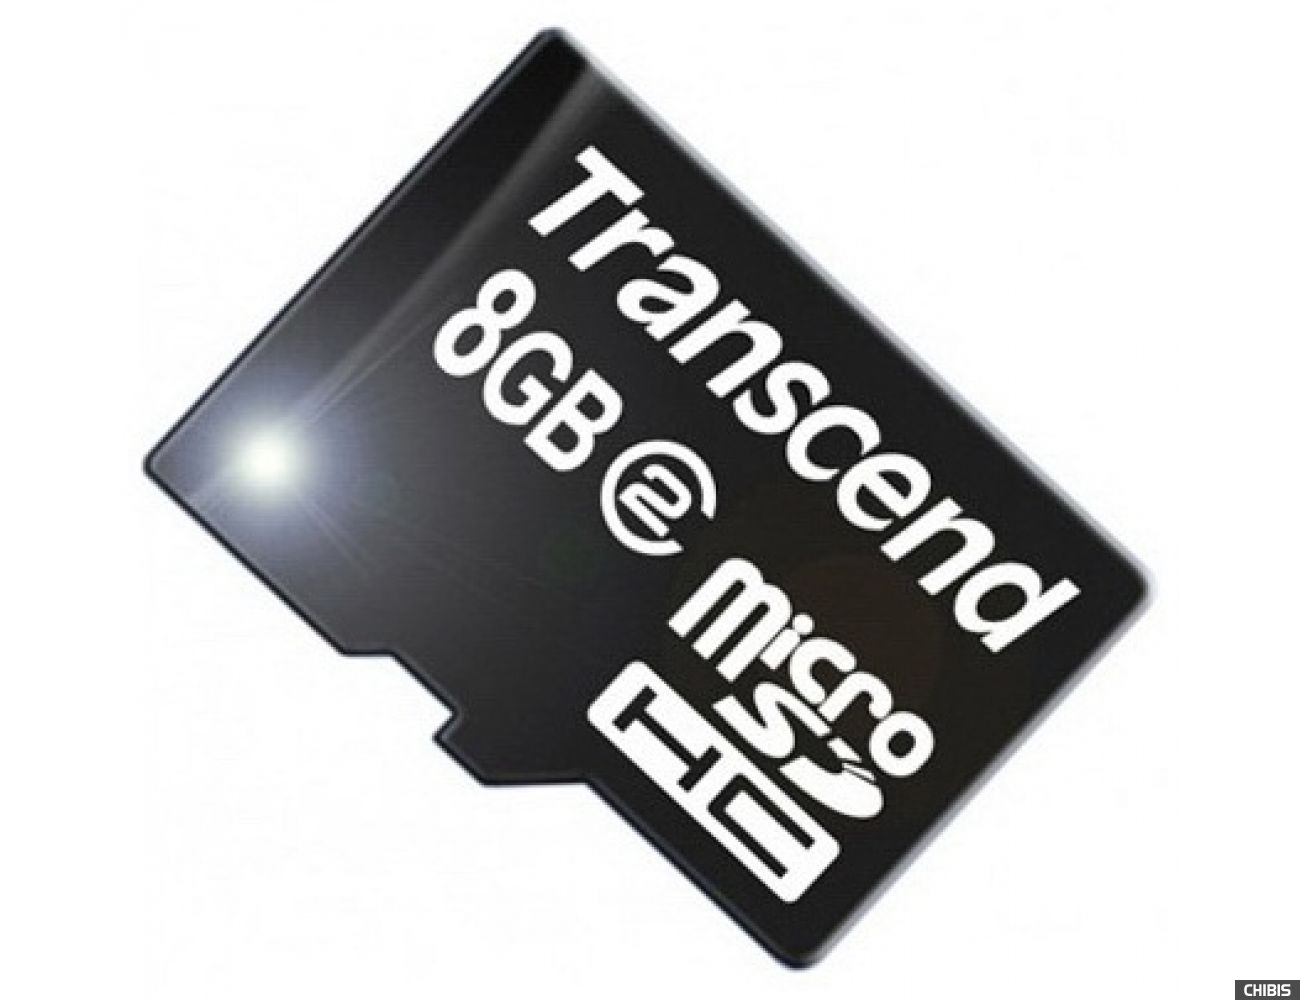 Карта памяти Transcend MicroSDHC 8Gb (Class 2) no adapter